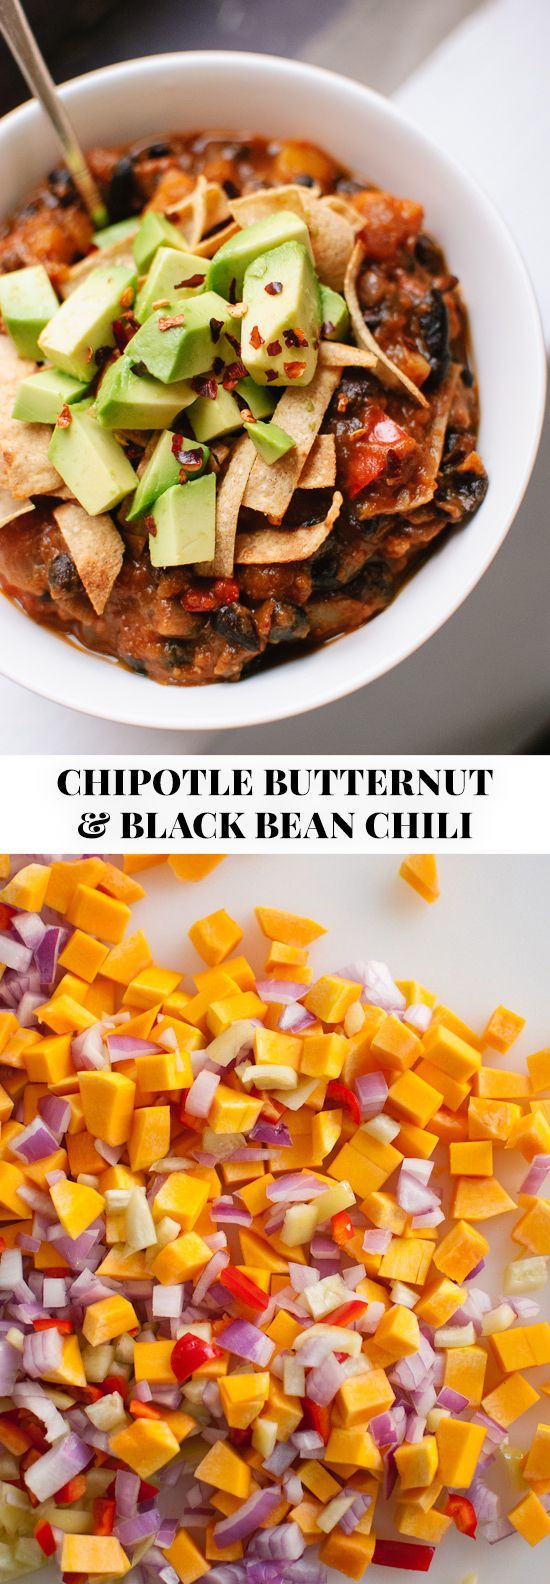 Chipotle butternut squash chili recipe, perfect for game days and cold weather! (Vegetarian, vegan and gluten free.) - /cookieandkate/